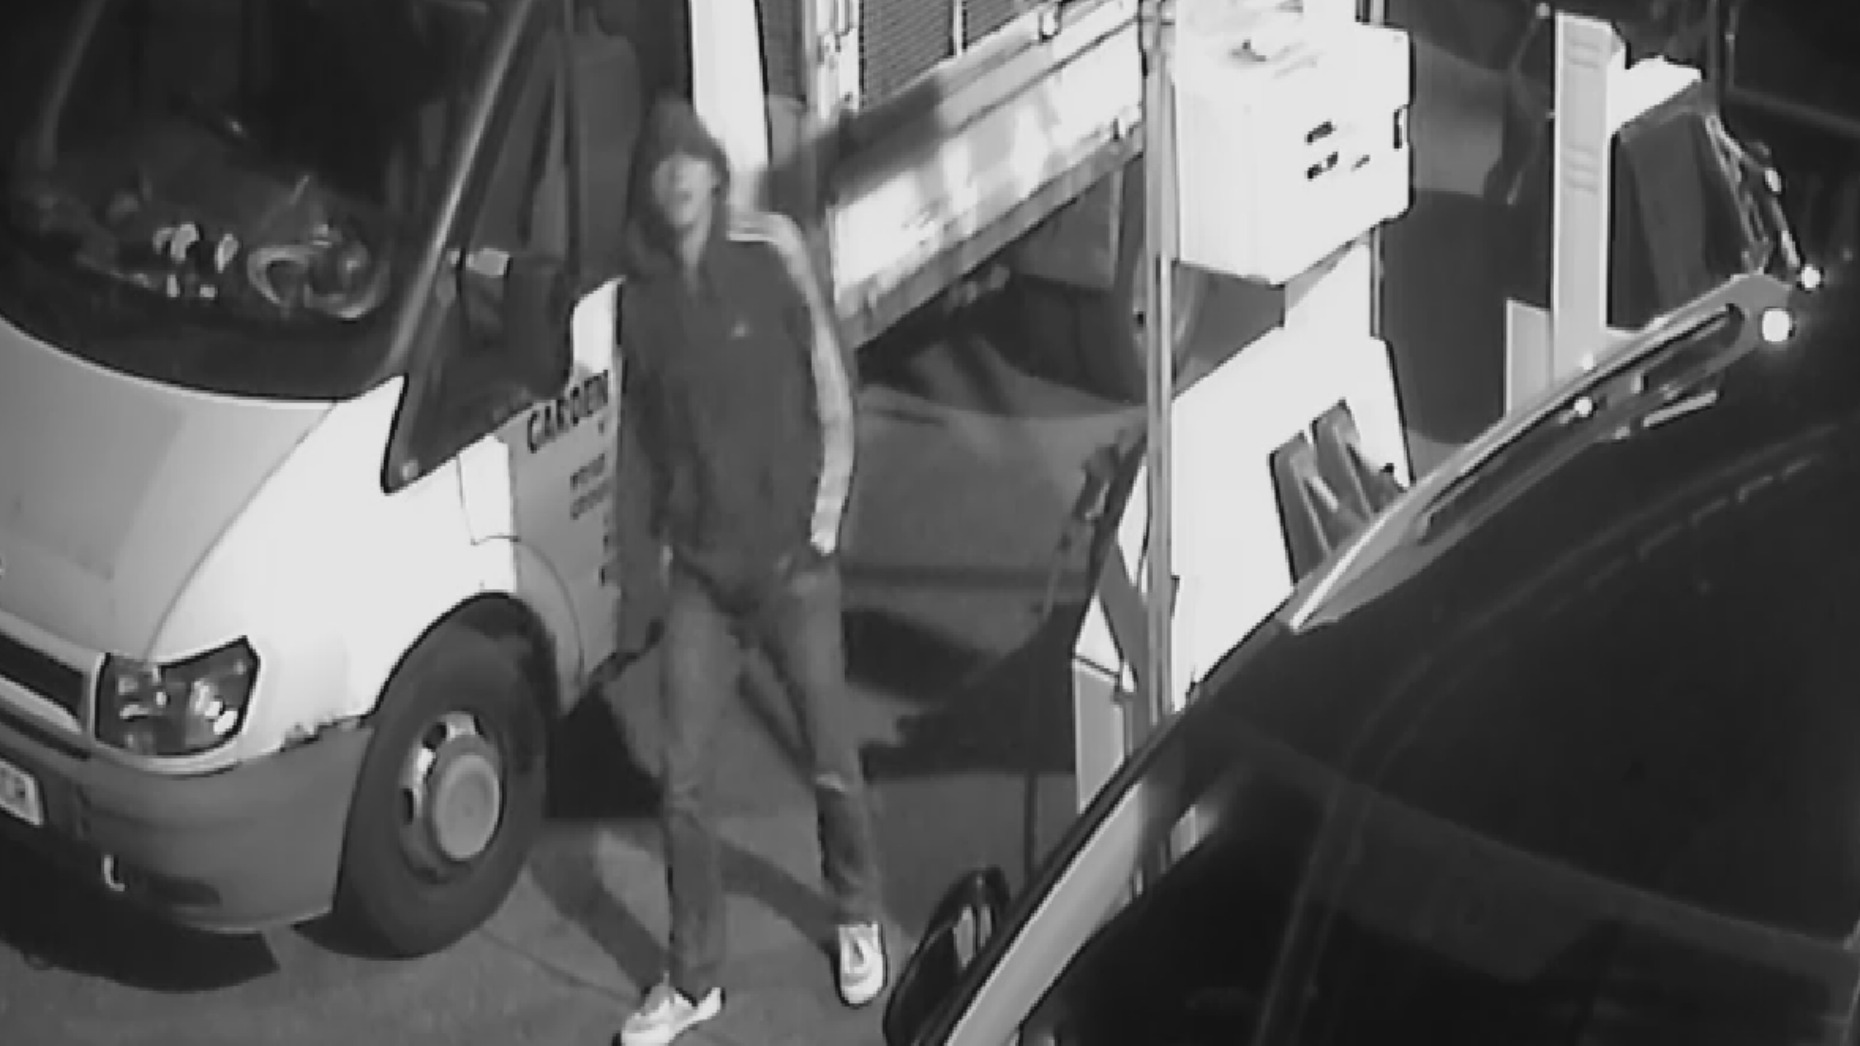 If you recognise this man please call 101.